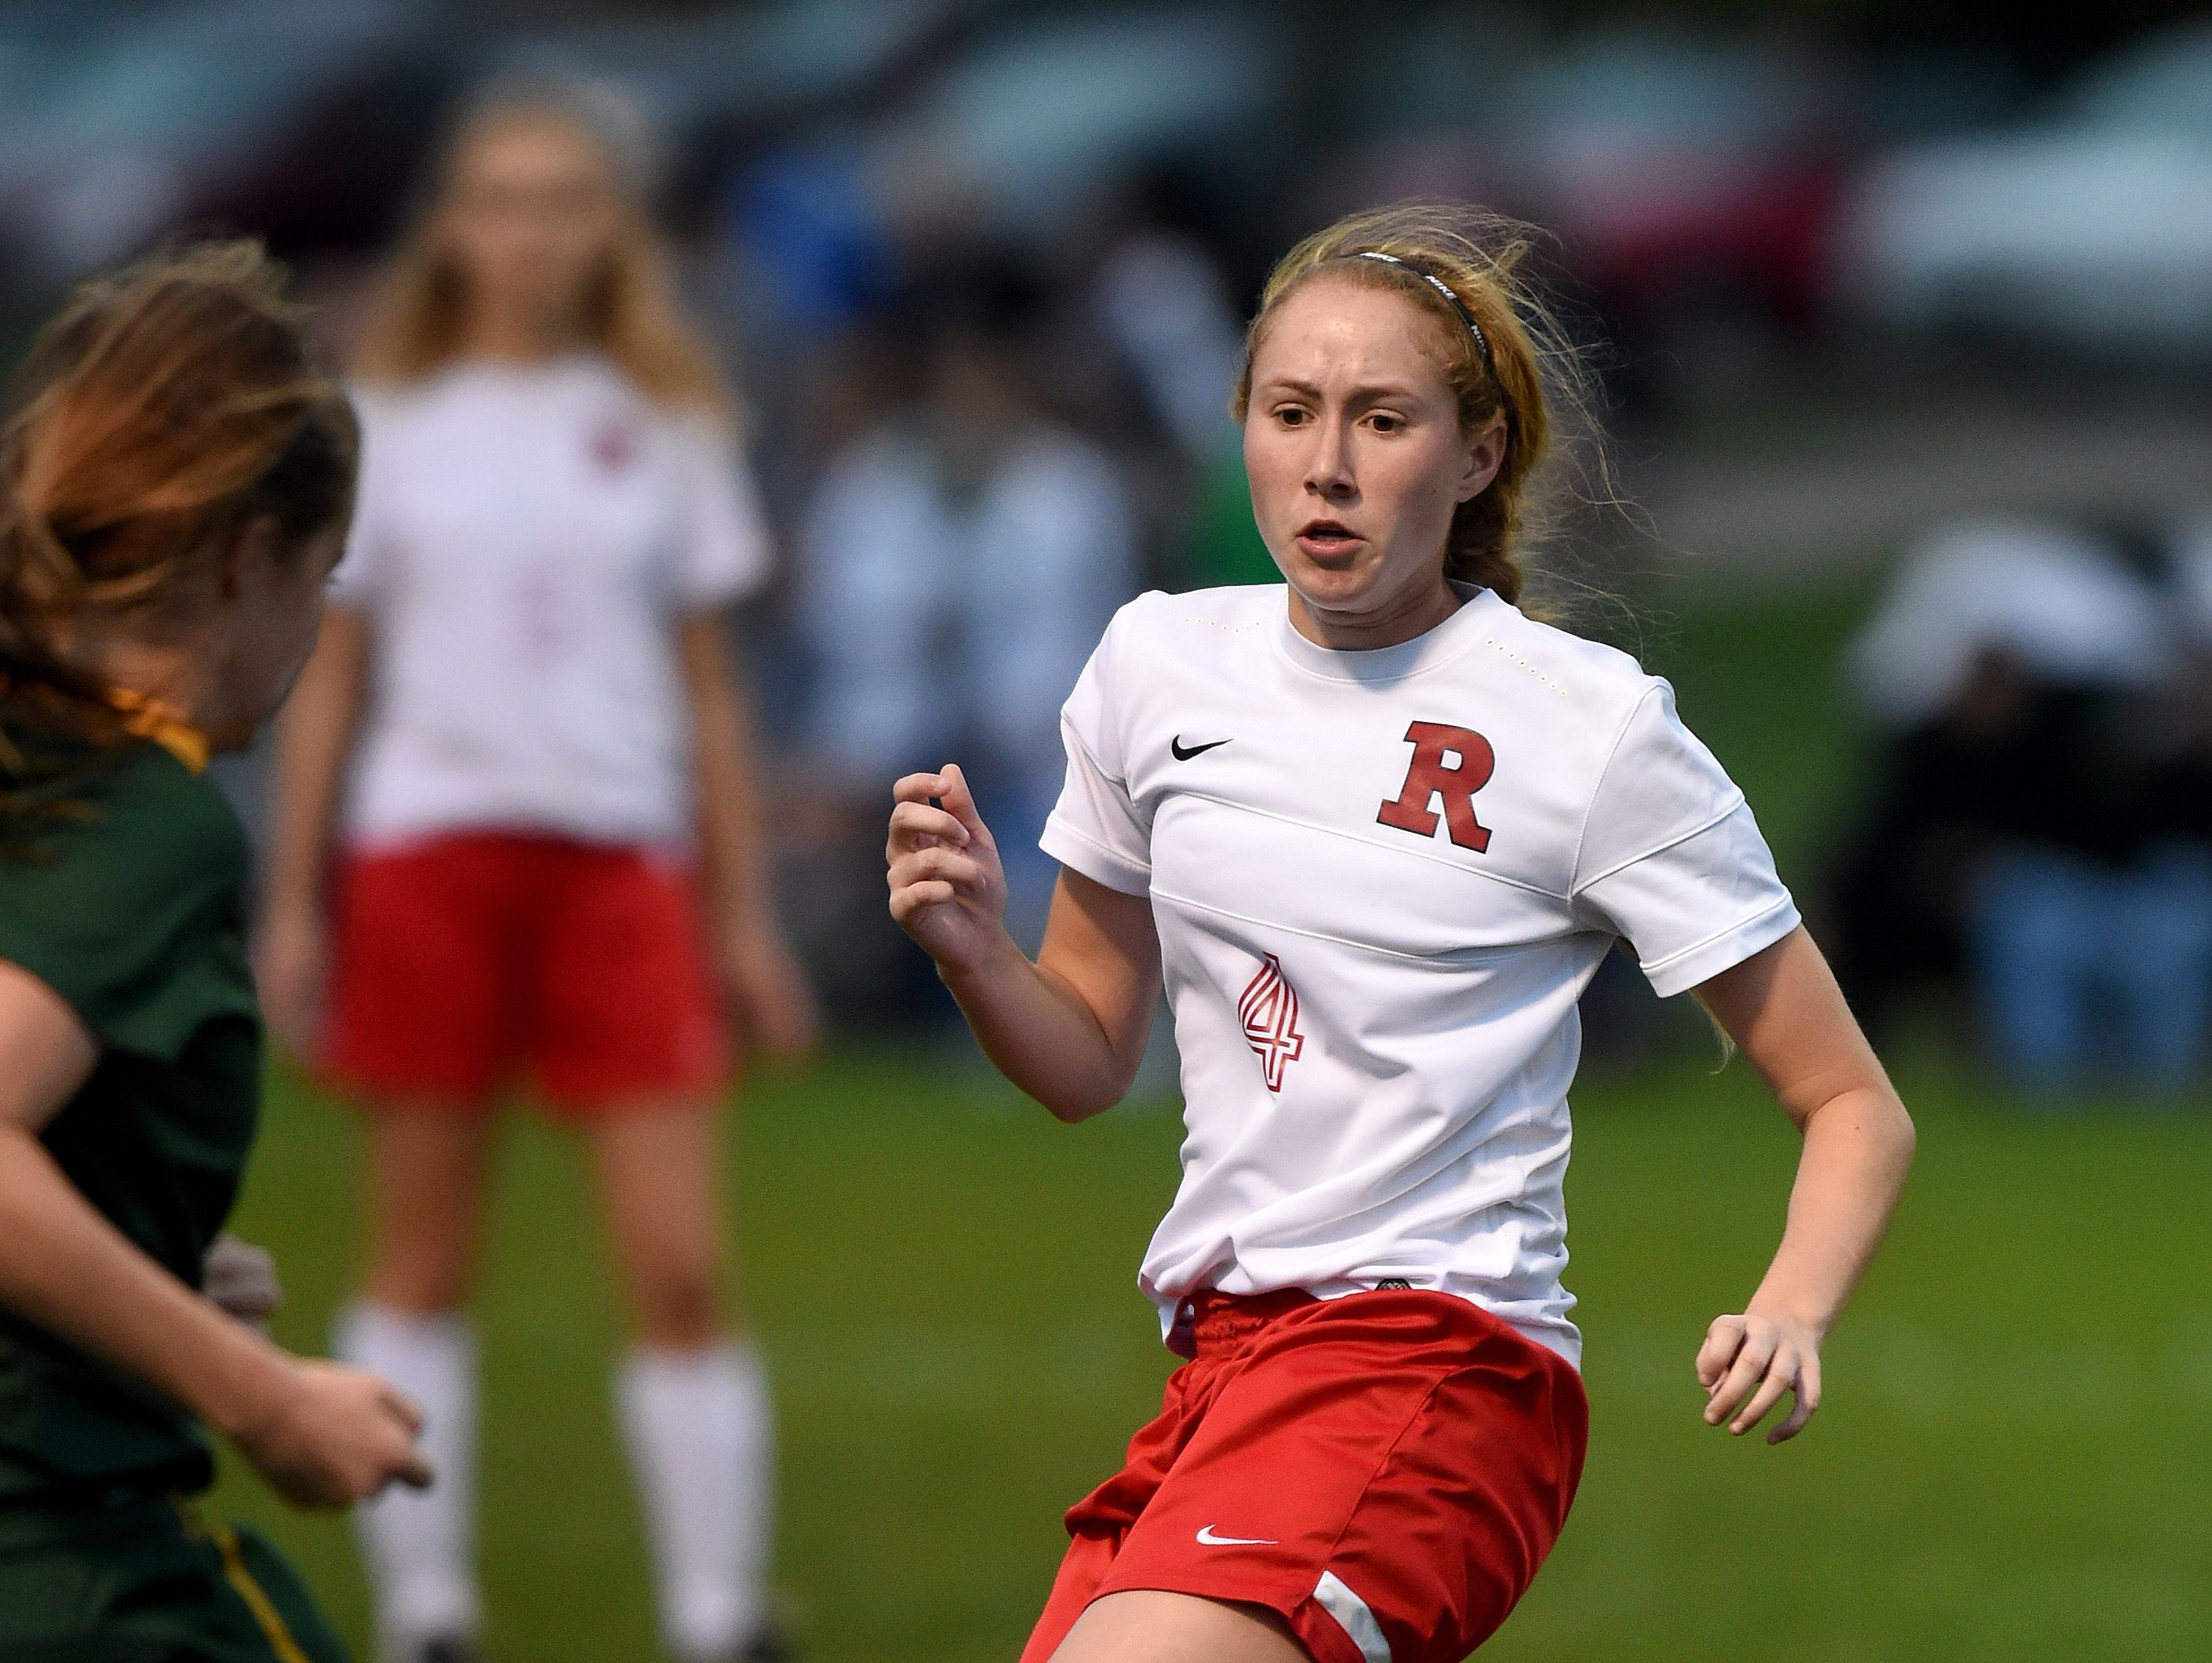 Richmond's Alexis Shiplett goes for the ball against Floyd Central Wednesday, Oct. 12, 2016 in the girls soccer regional game at East Central High School.